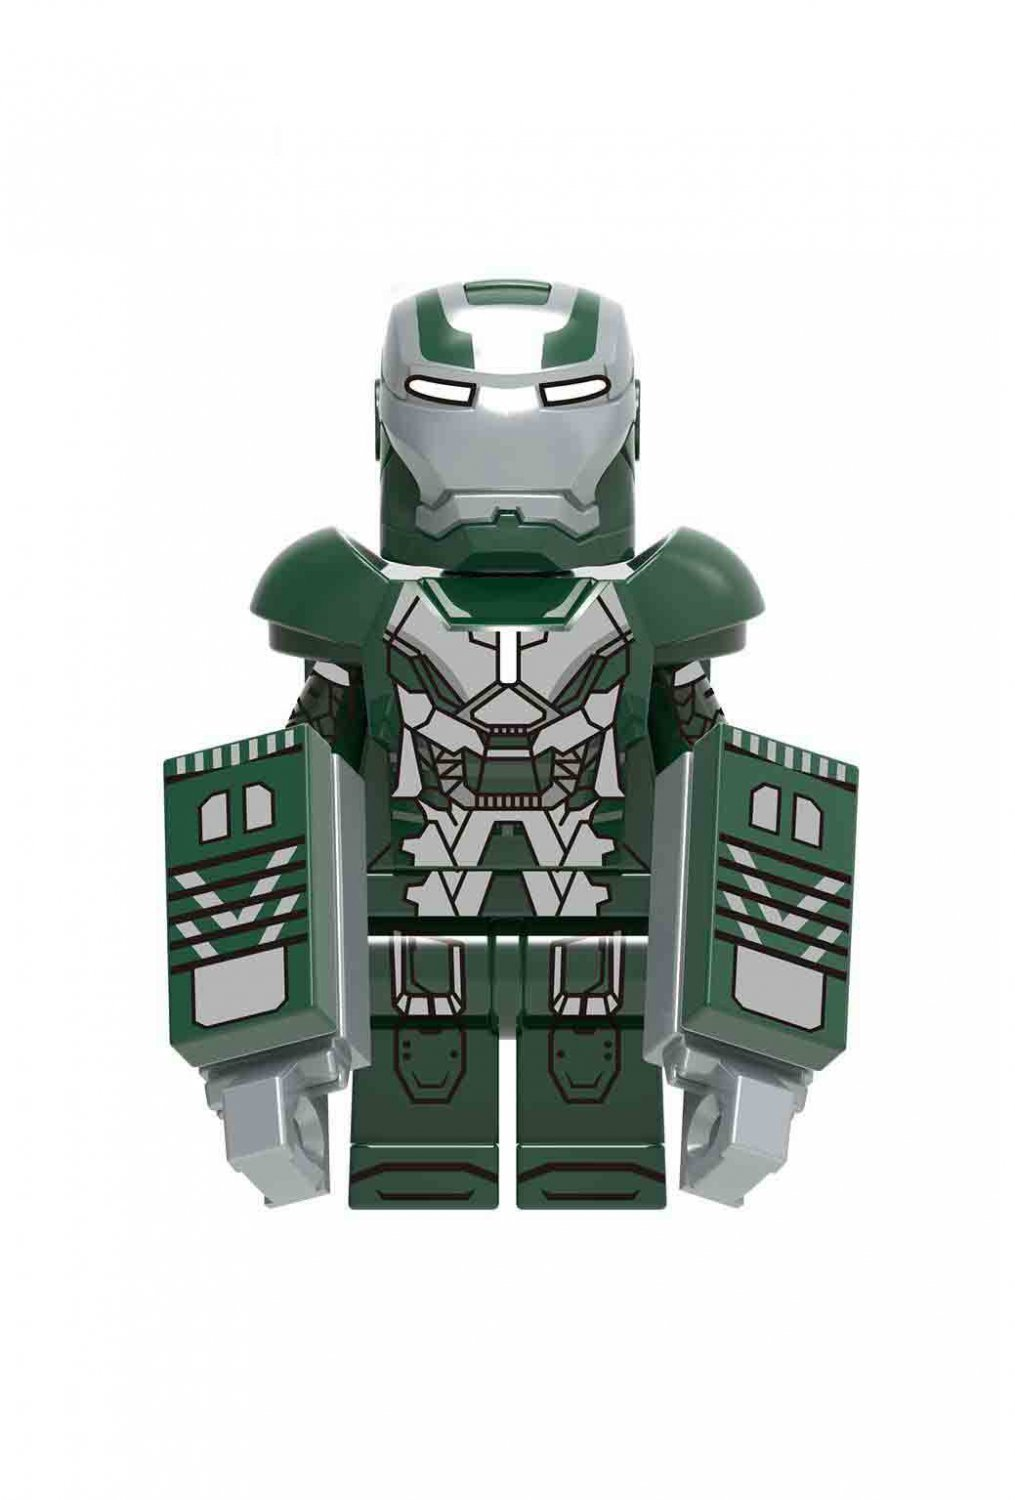 New MK26 Ironman Minifigures Compatible Lego Marvel MK26 Minifigure